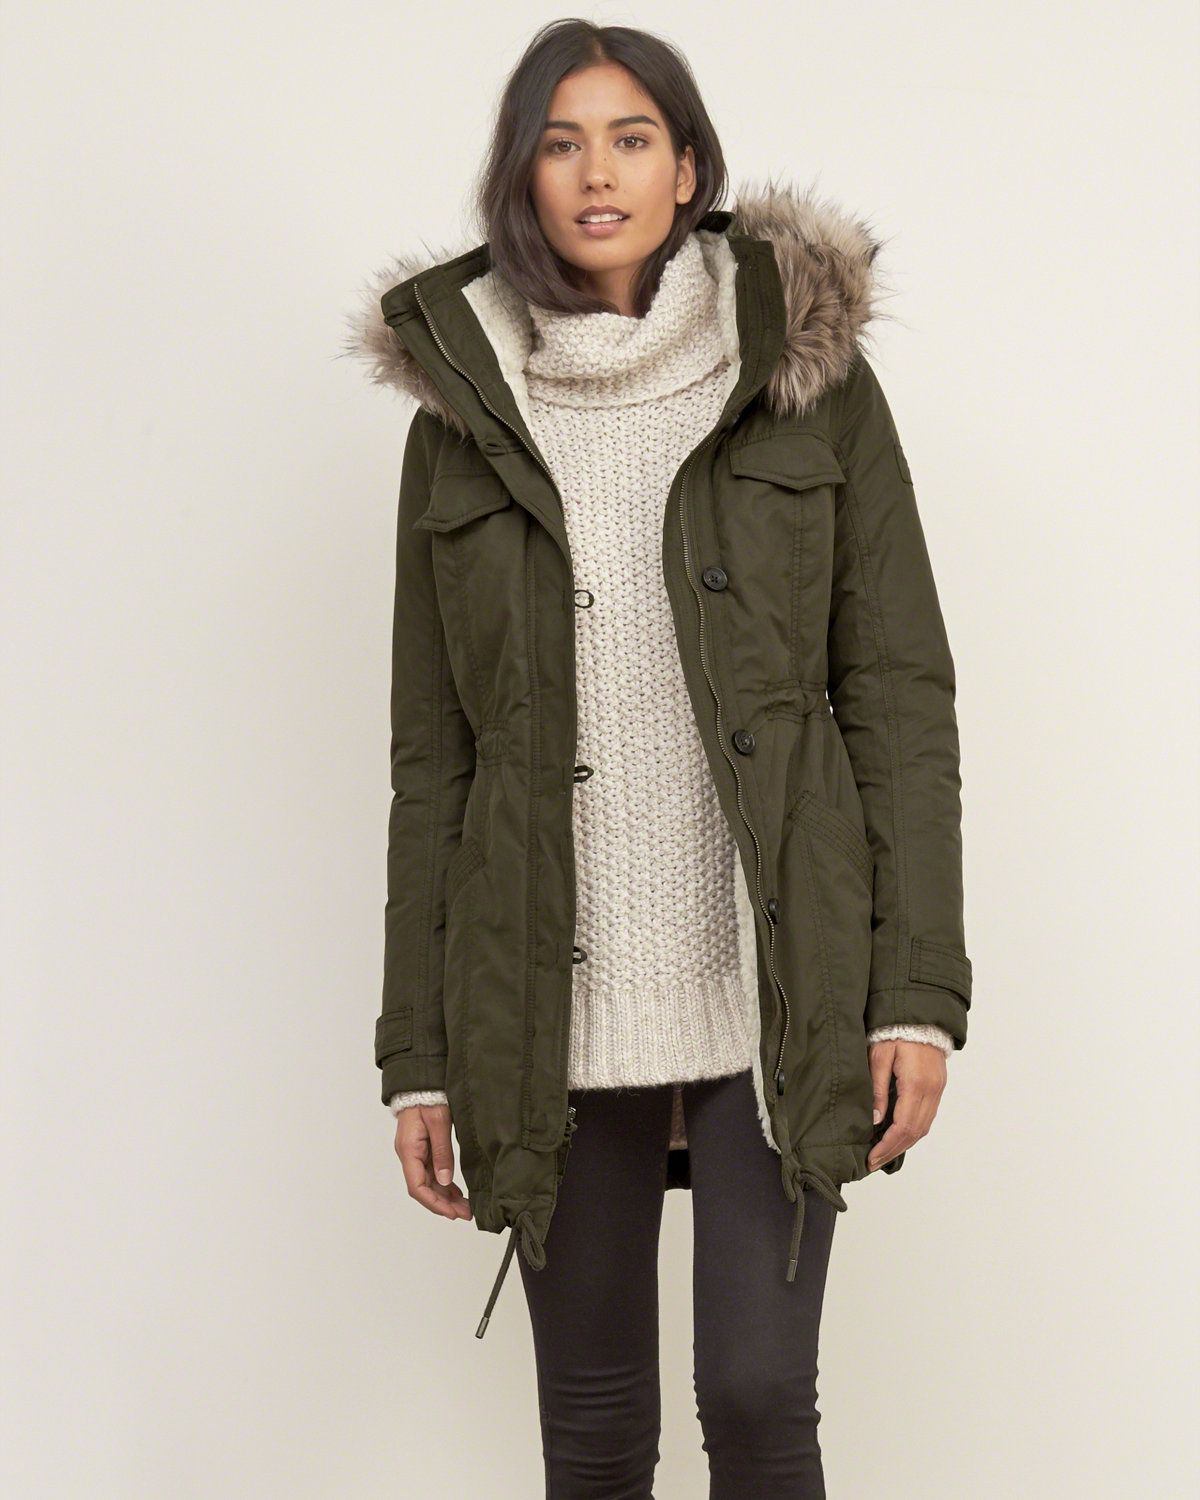 Military-inspired, warm and comfortable, lined with cozy sherpa ...